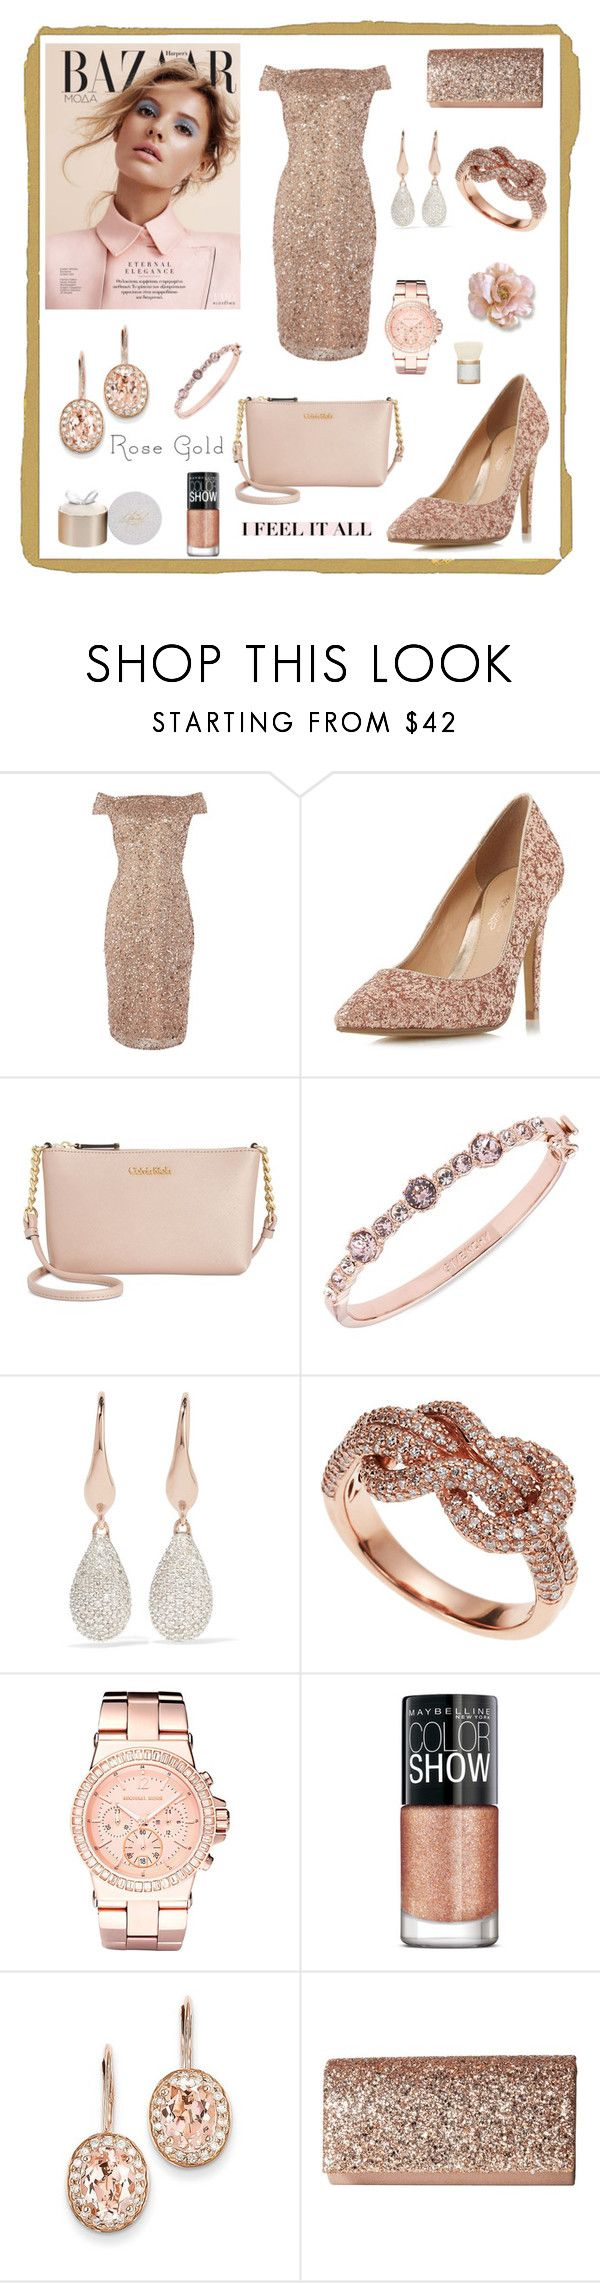 """""""Rose gold Woman"""" by majalina123 ❤ liked on Polyvore featuring Adrianna Papell, Head Over Heels by Dune, Calvin Klein, Givenchy, Monica Vinader, Effy Jewelry, Michael Kors, Maybelline, Kevin Jewelers and Jessica McClintock"""